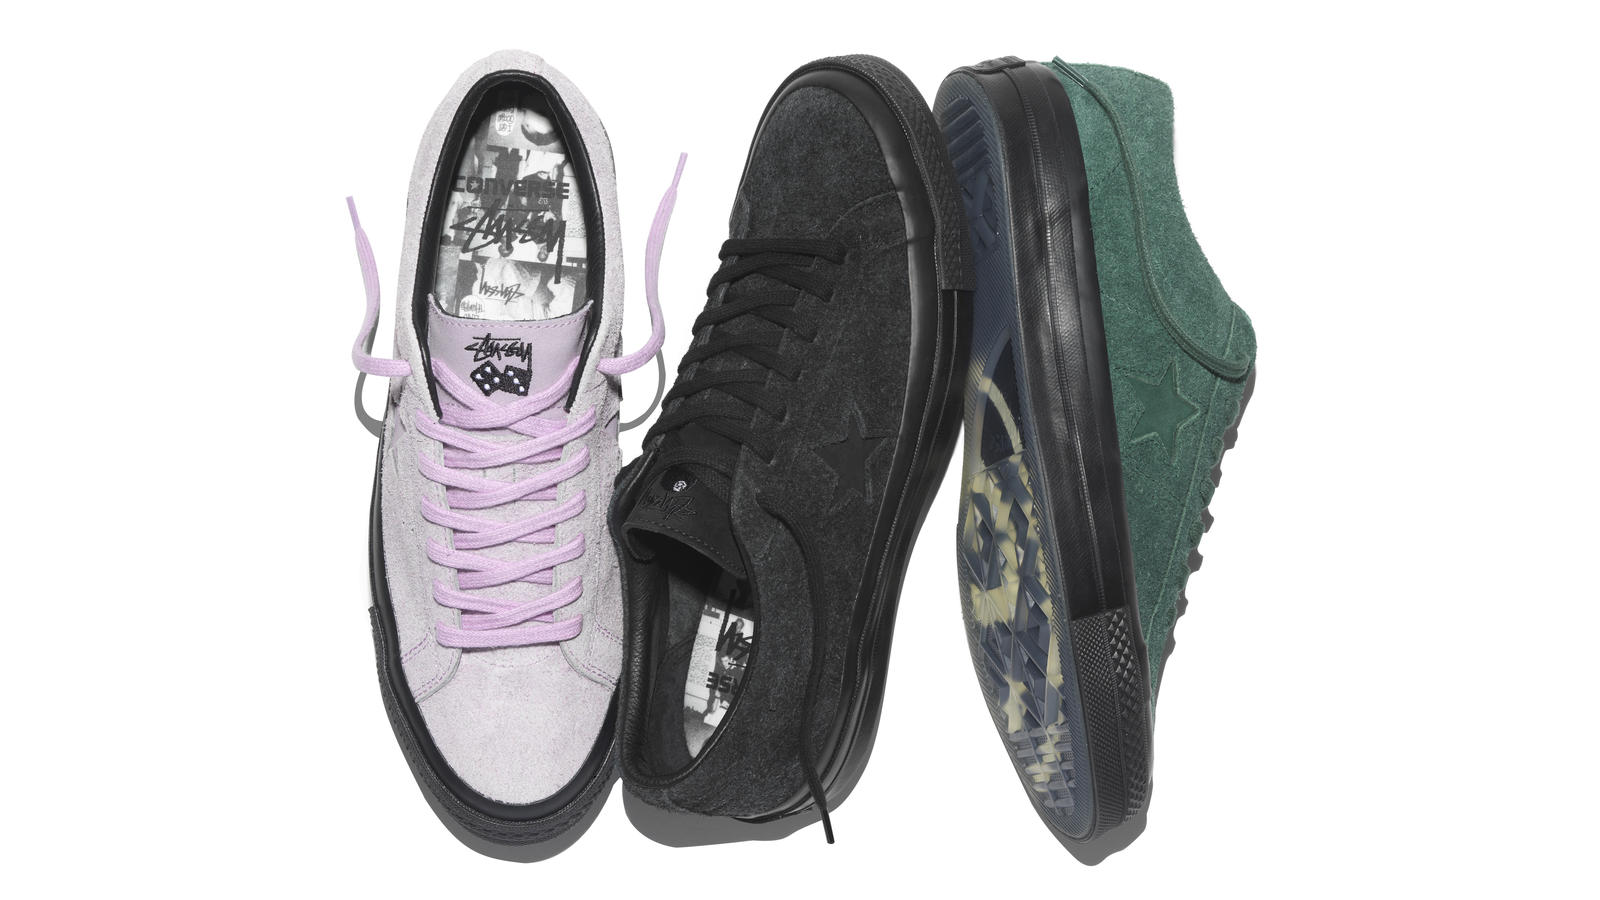 867a405f7a0c5d Converse and Stussy Team Up on One Star  74 - Nike News